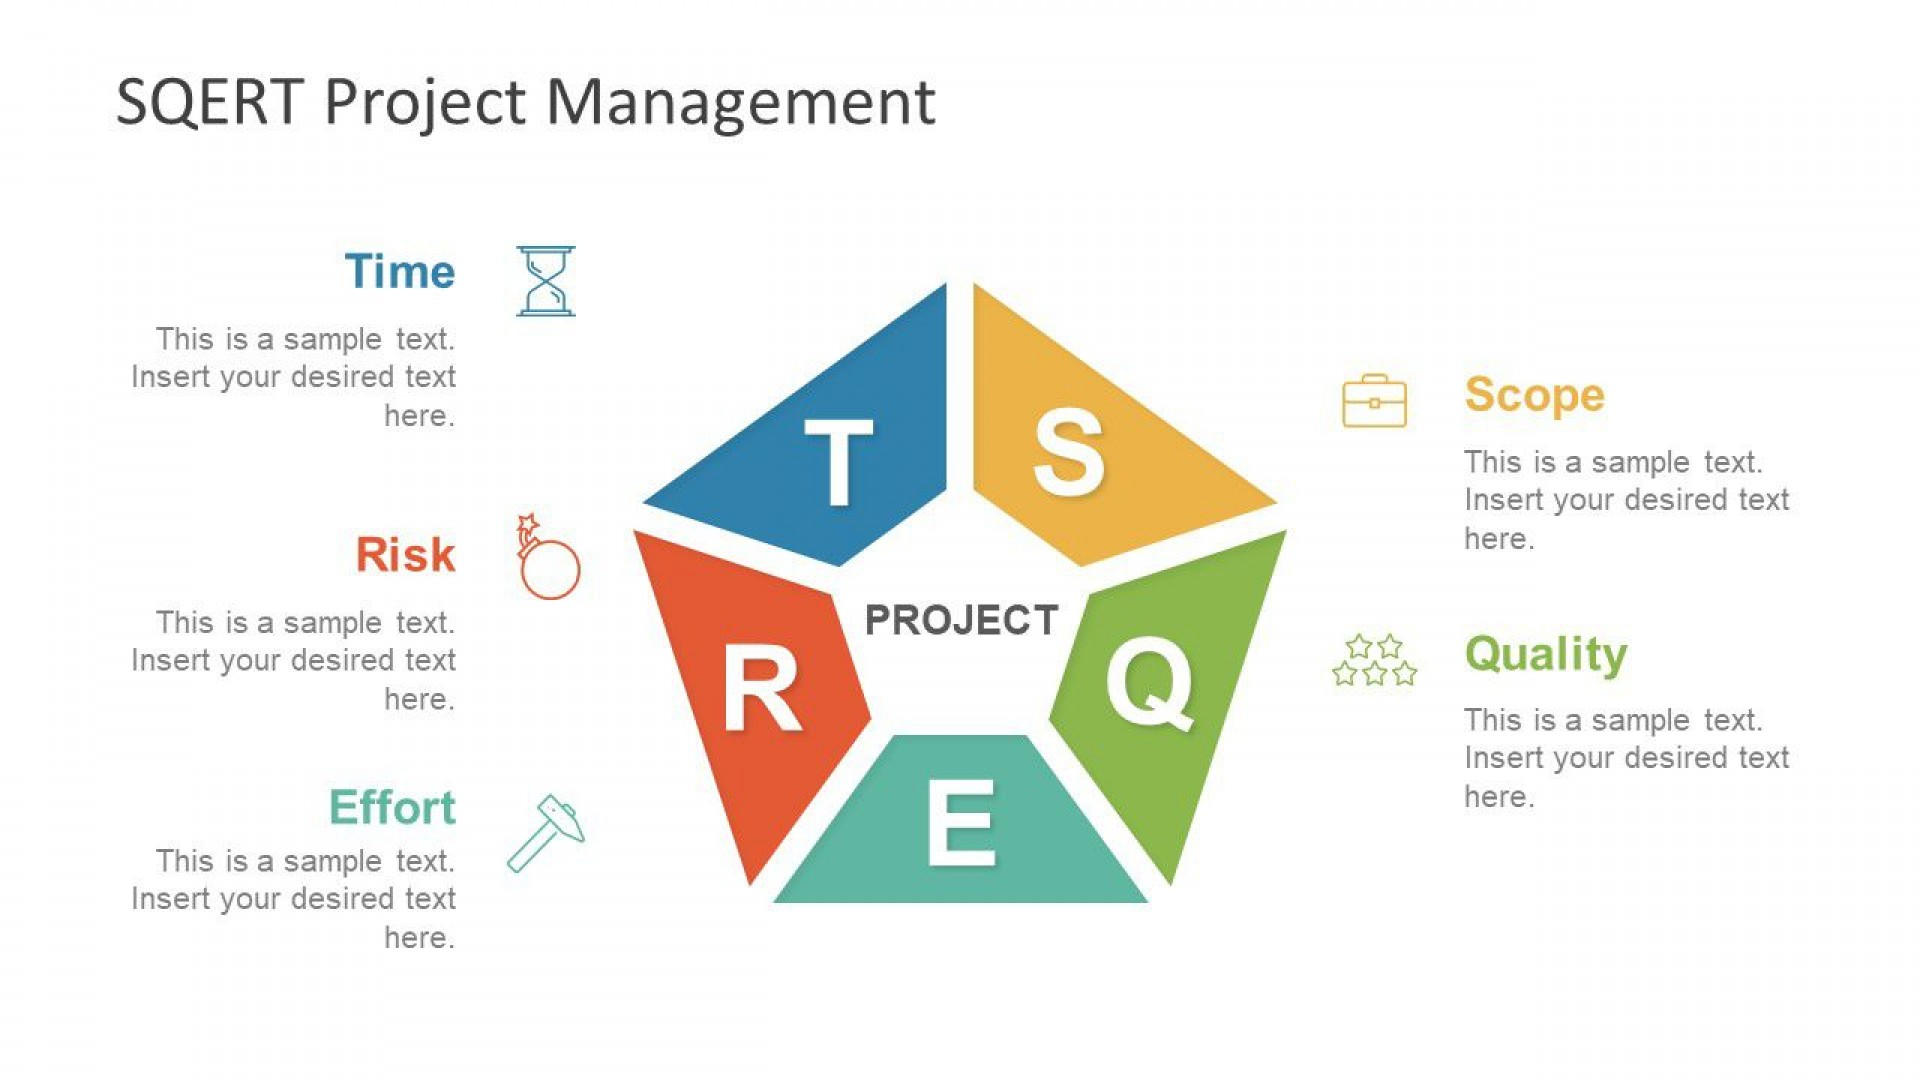 001 Incredible Project Management Ppt Template Free Download Highest Quality  Sqert Powerpoint Dashboard1920